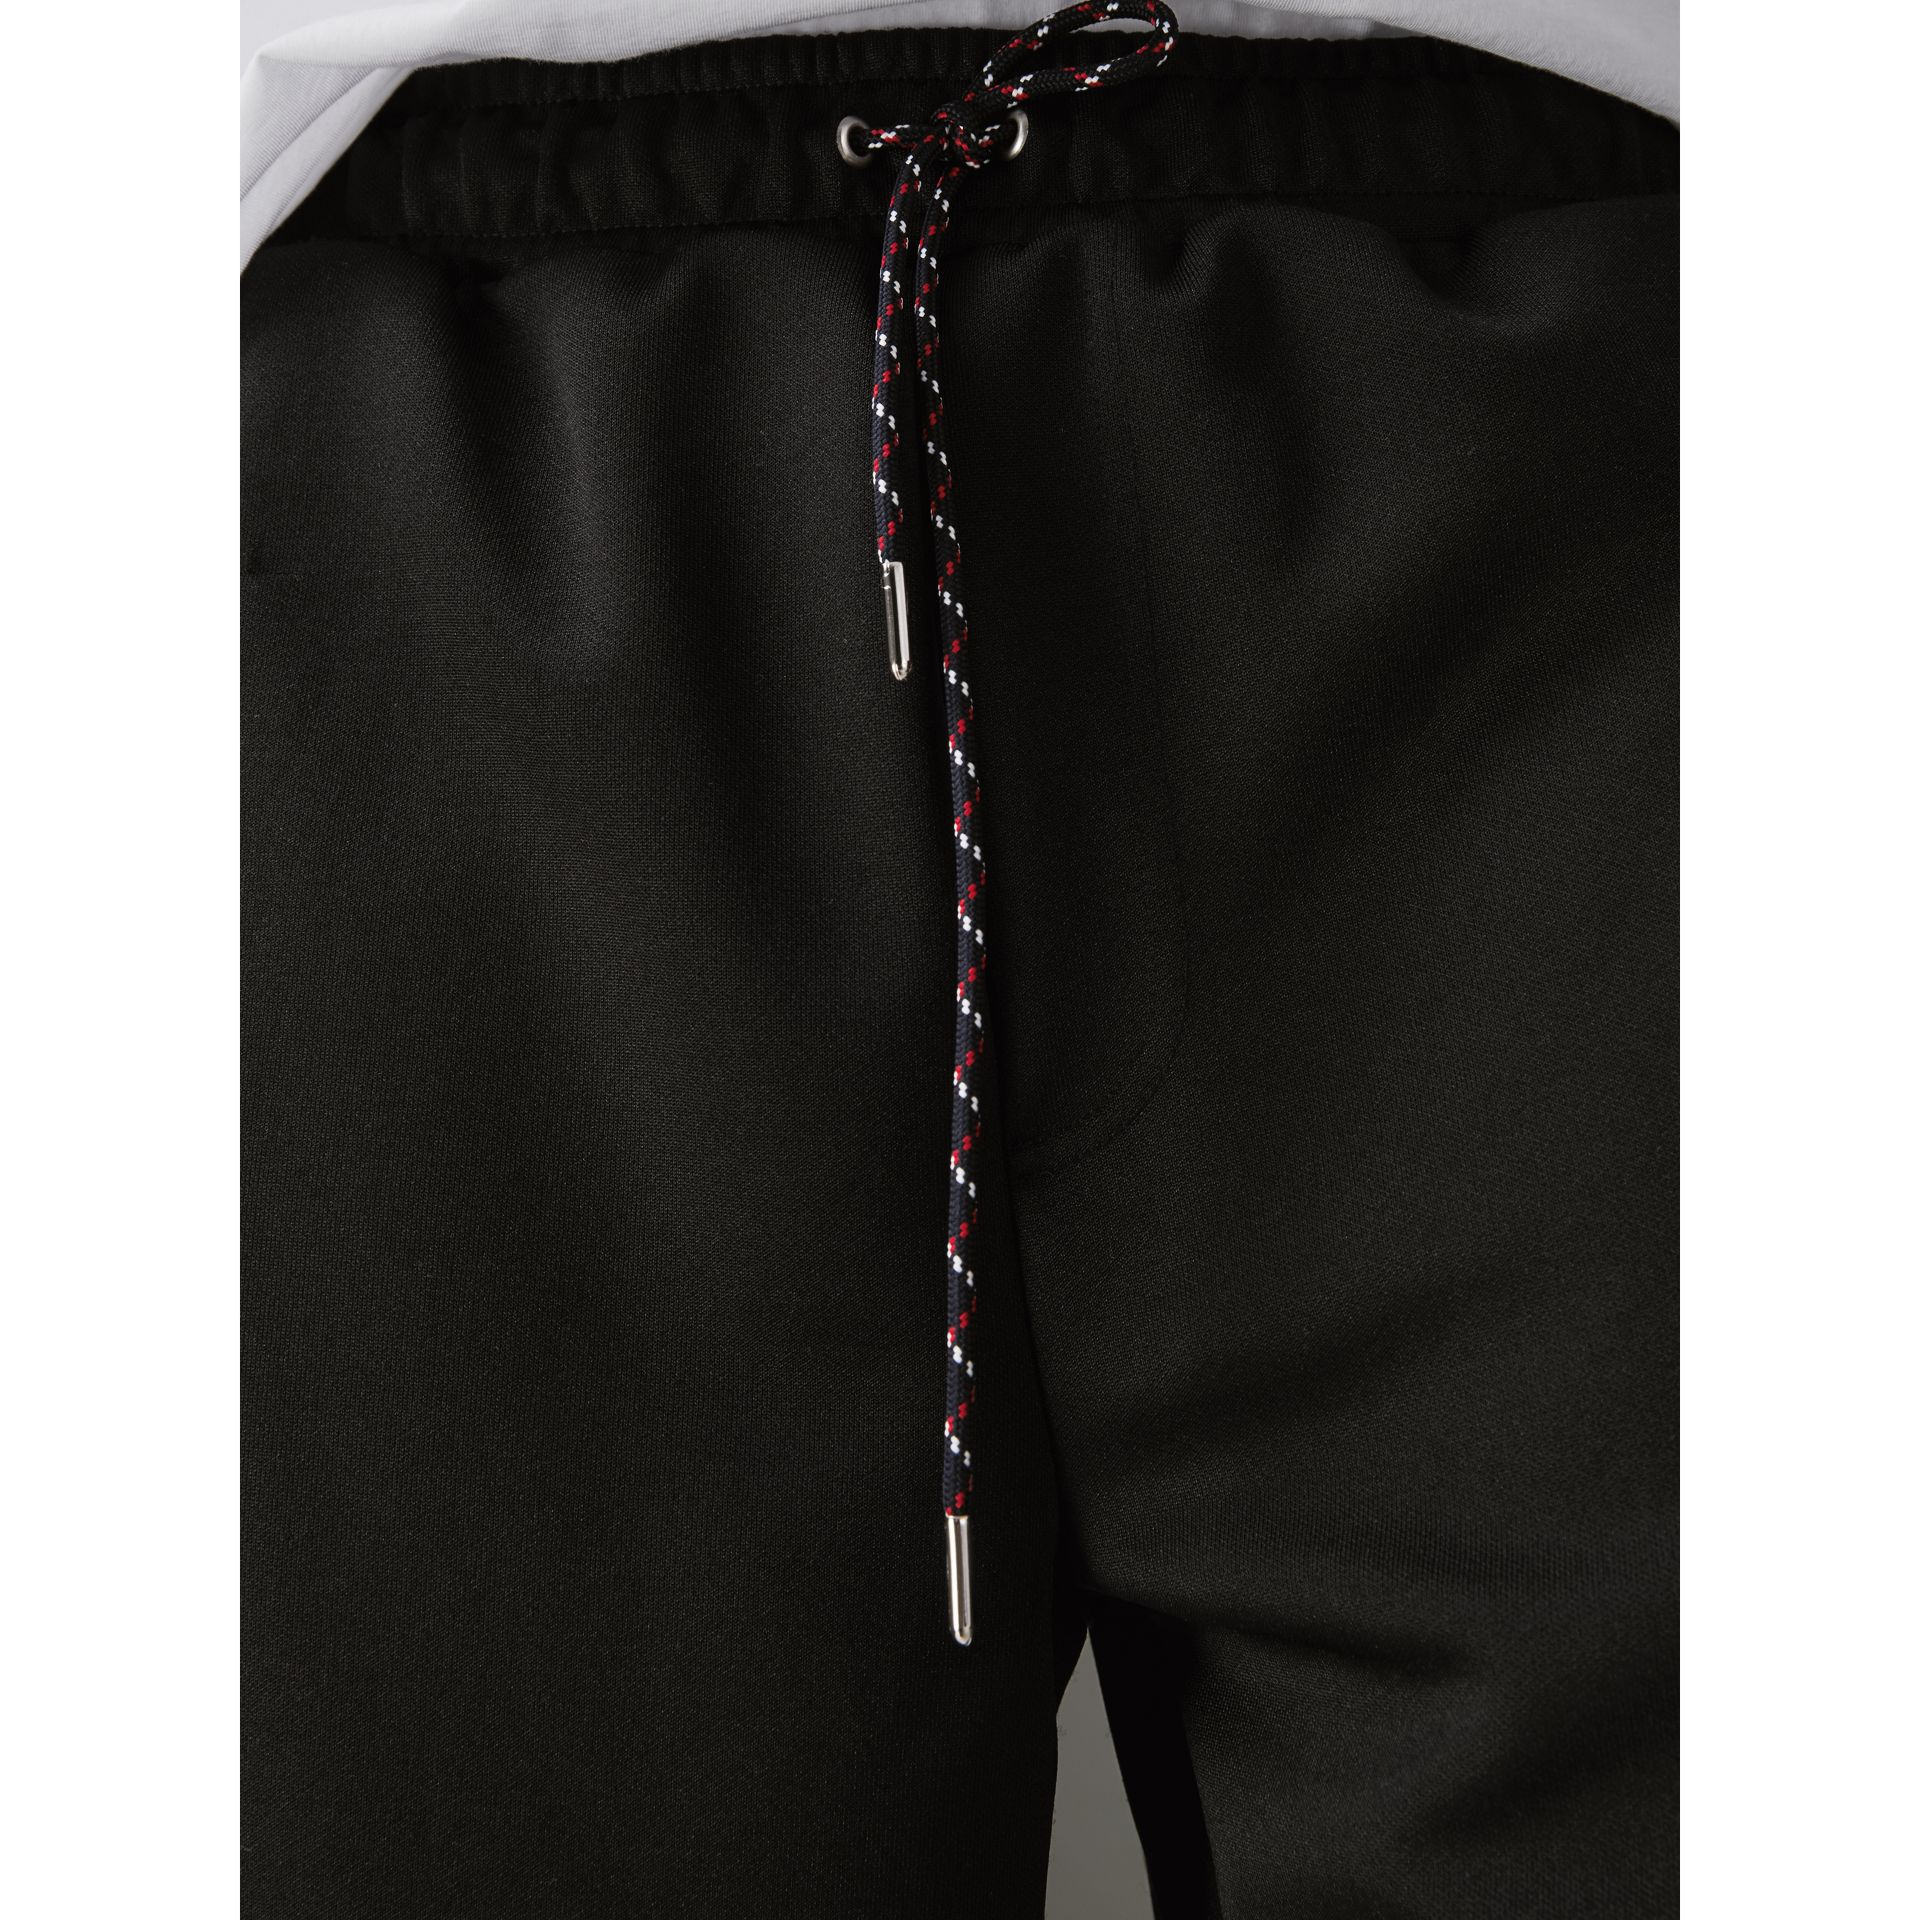 Cotton Blend Drawcord Shorts in Black - Men | Burberry Australia - gallery image 1